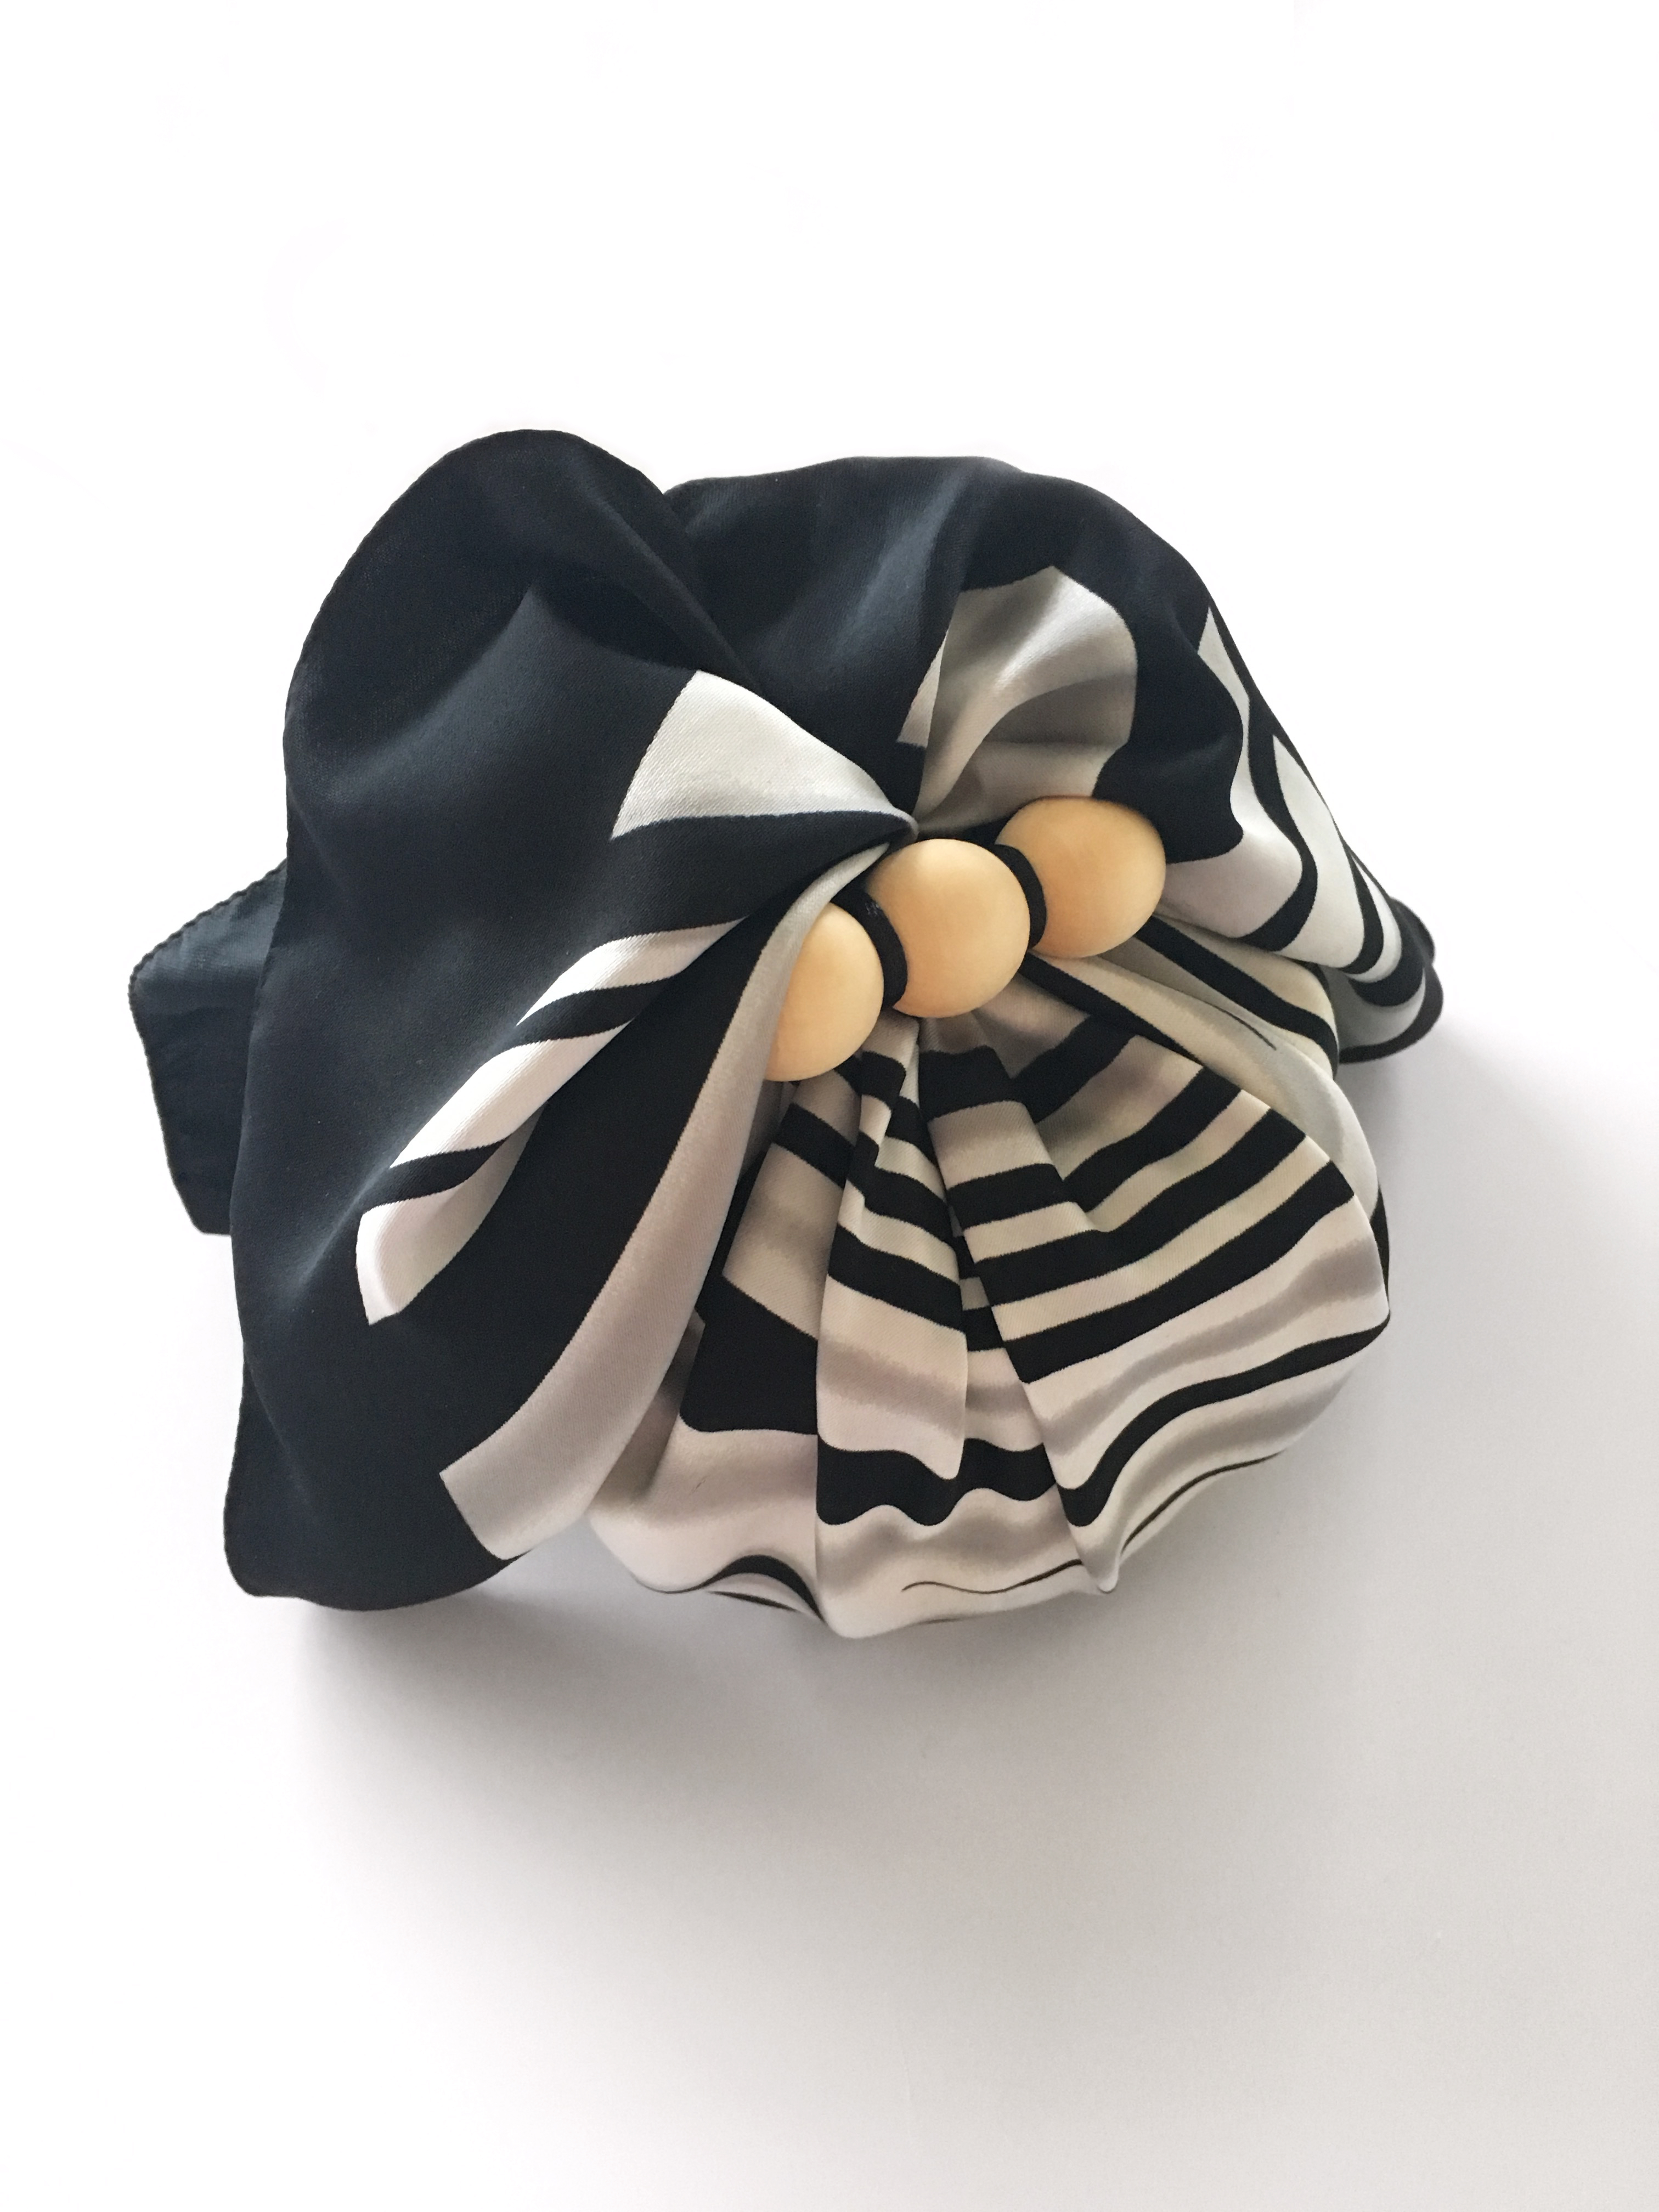 Gift wrapped into a scarf as an example of sustainable gift wrapping.